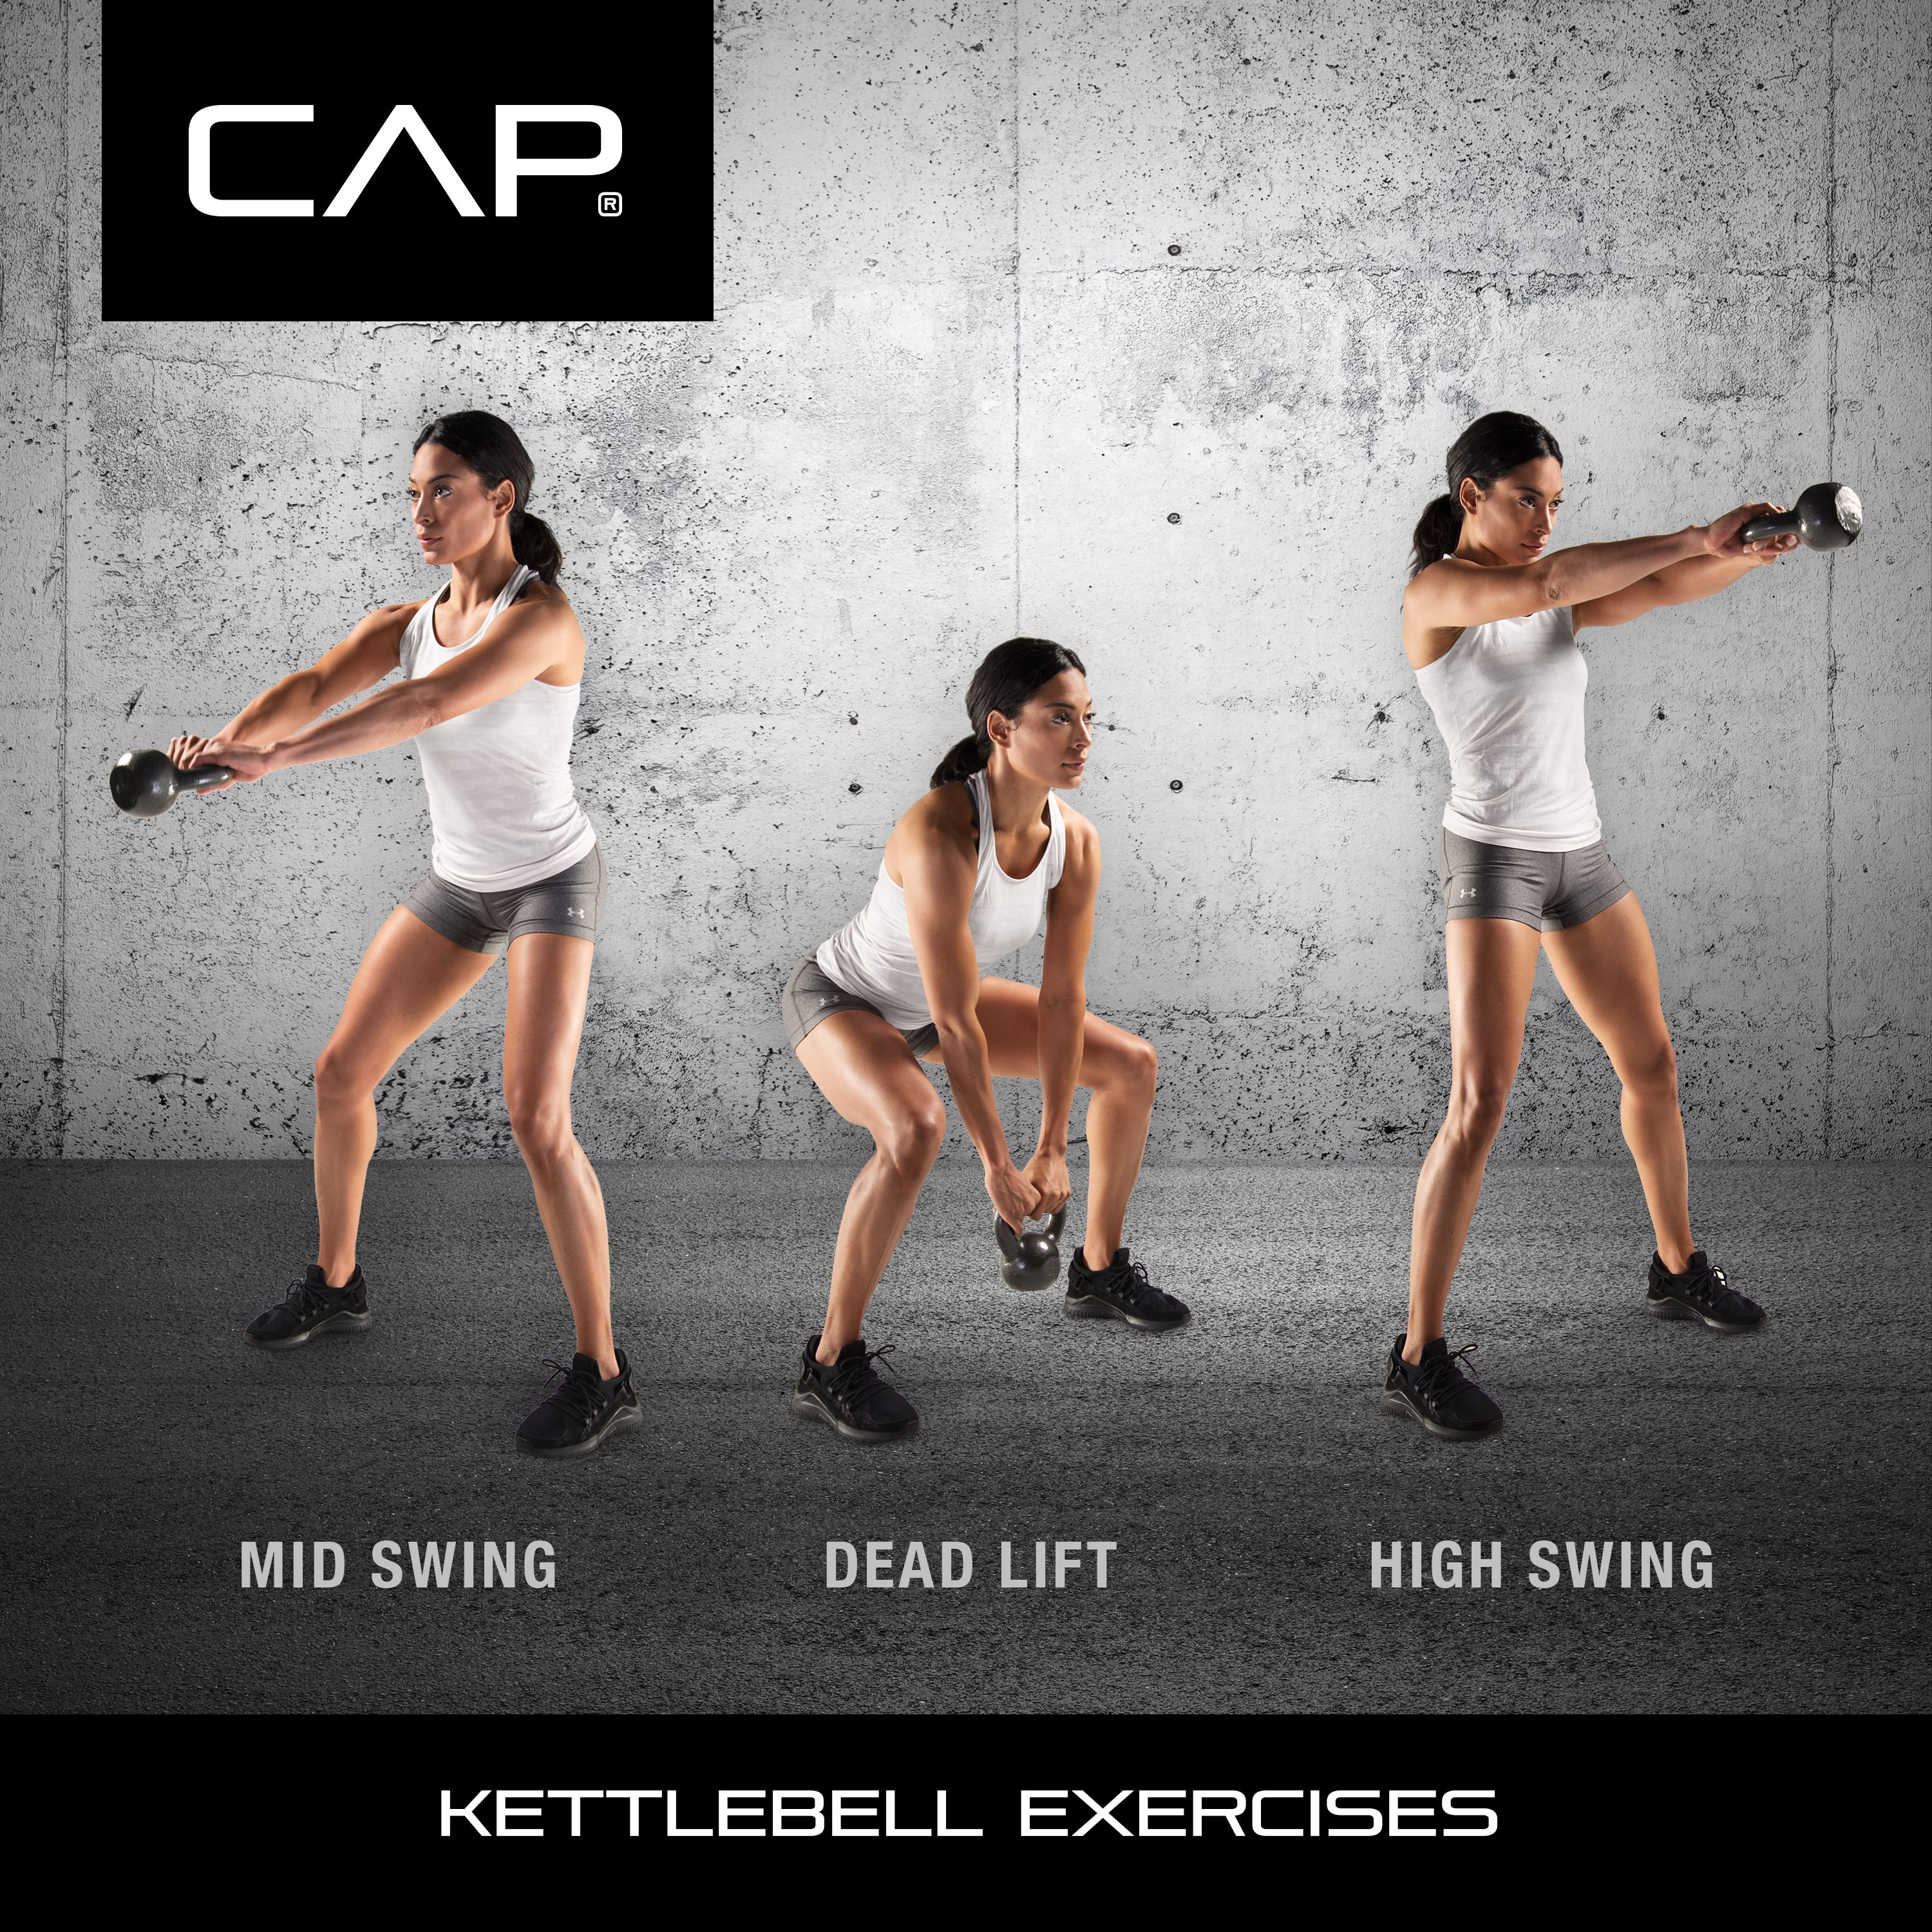 CAP Cast Iron Kettlebell 80 LBS Weight Fitness Body Training Exercise Gym